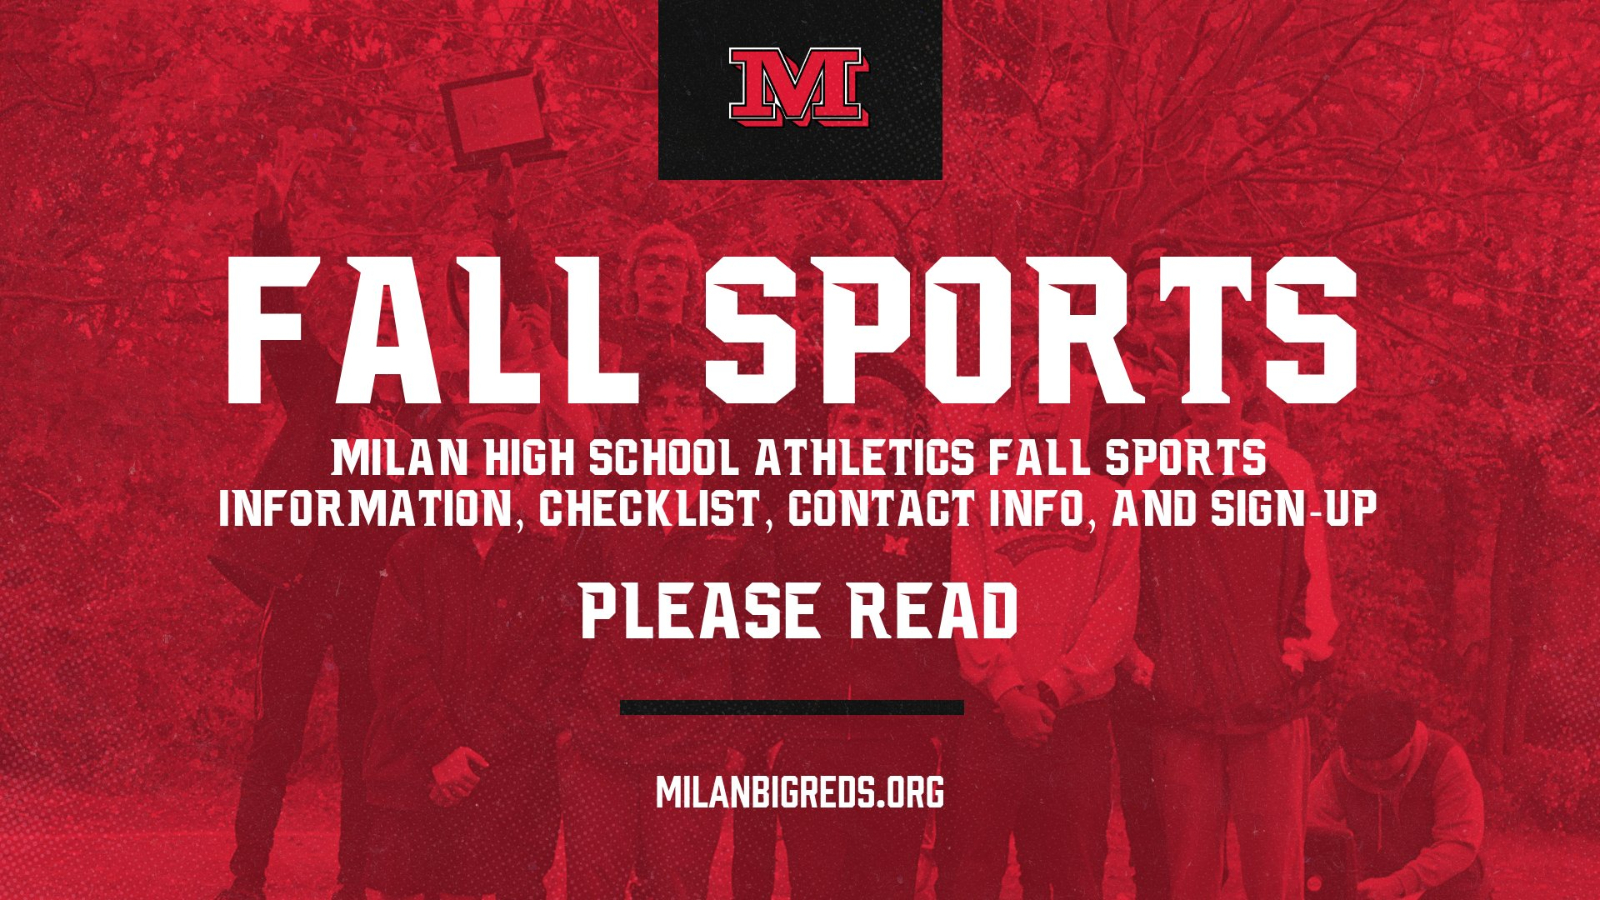 Milan Fall Sports Information, Checklist, and Sign-Up